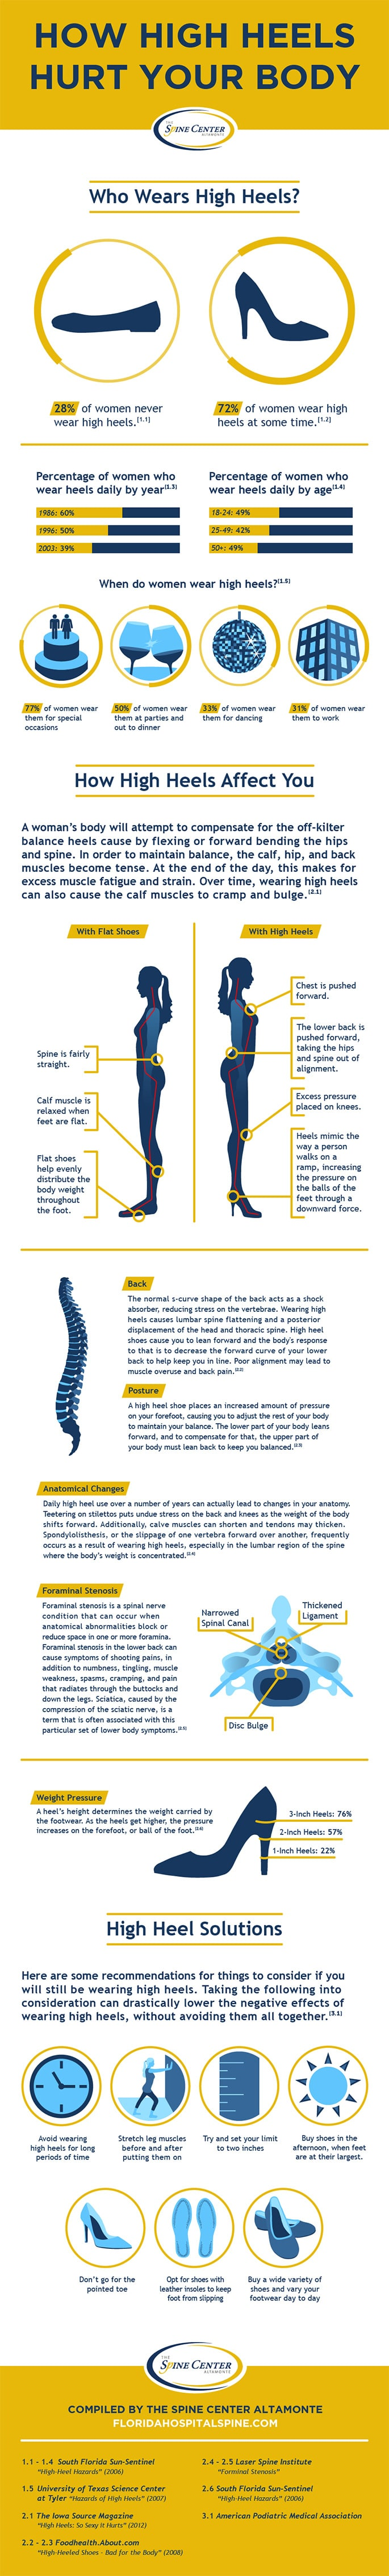 How High Heels Hurt Your Body [Infographic]